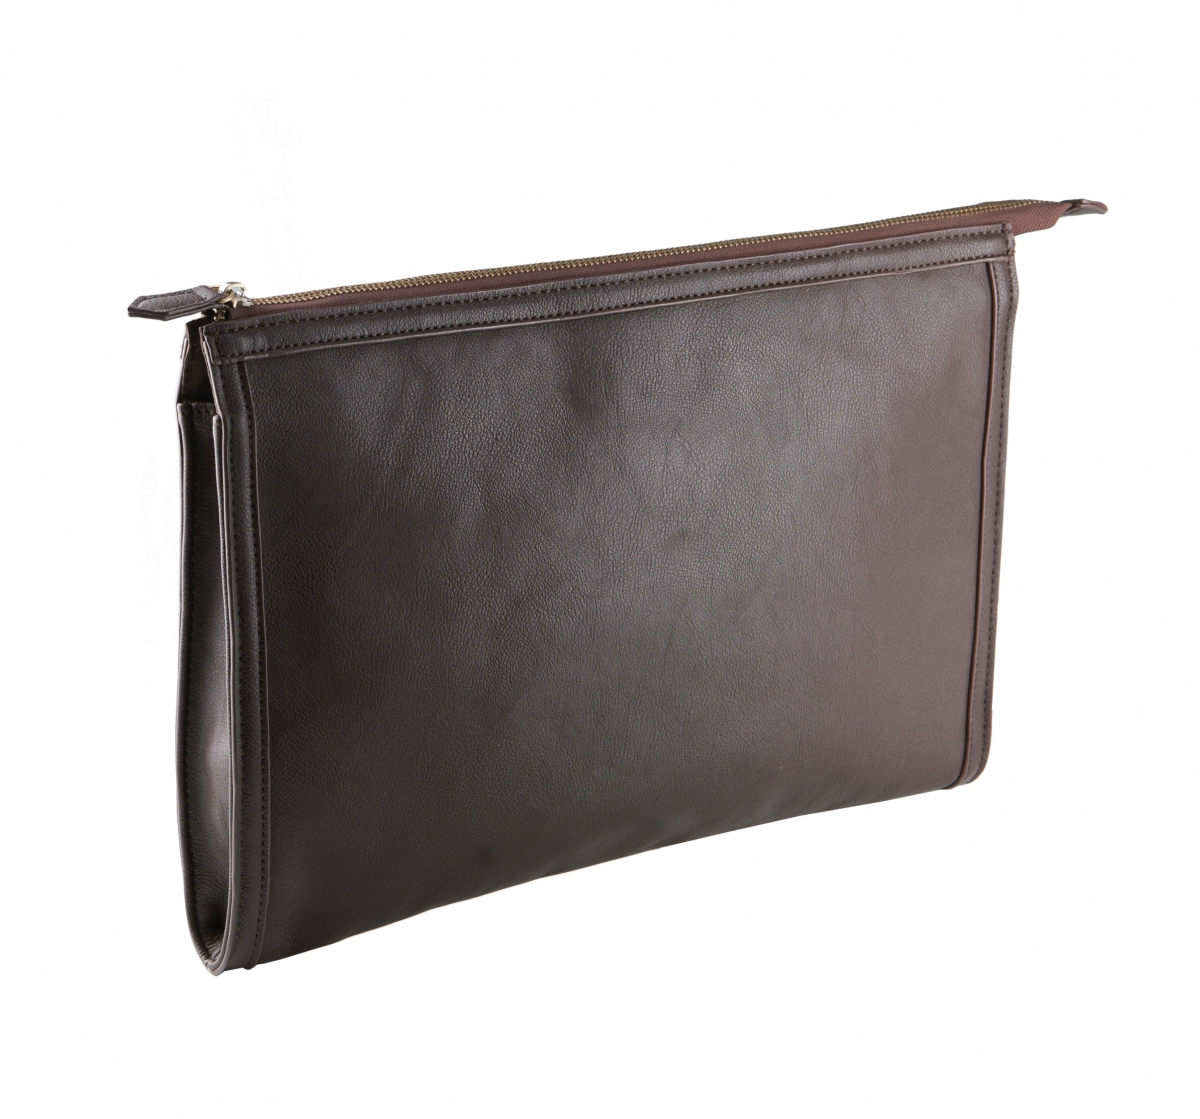 Sacoche Porte Documents Housse Tablette Ou Ordianteur Portable - Pochette porte document